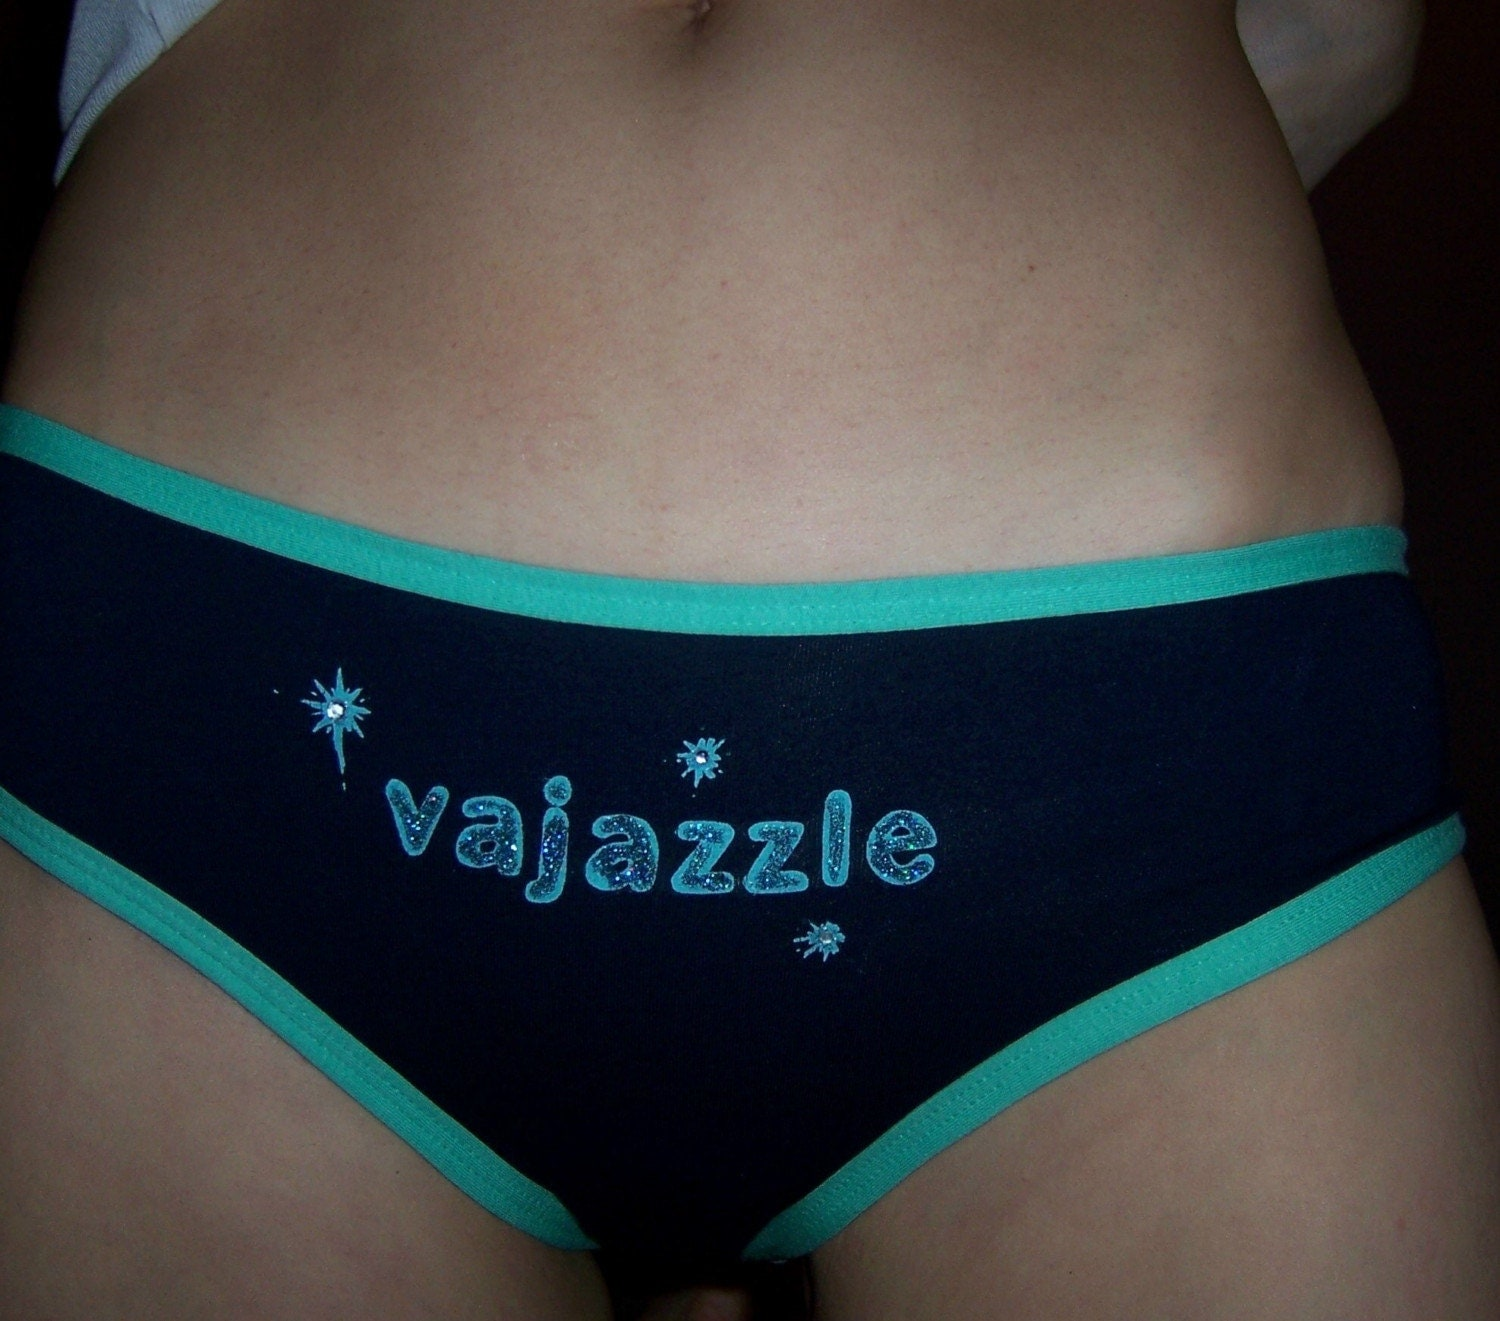 Completely Bare Vajazzle Newhairstylesformen2014 Com